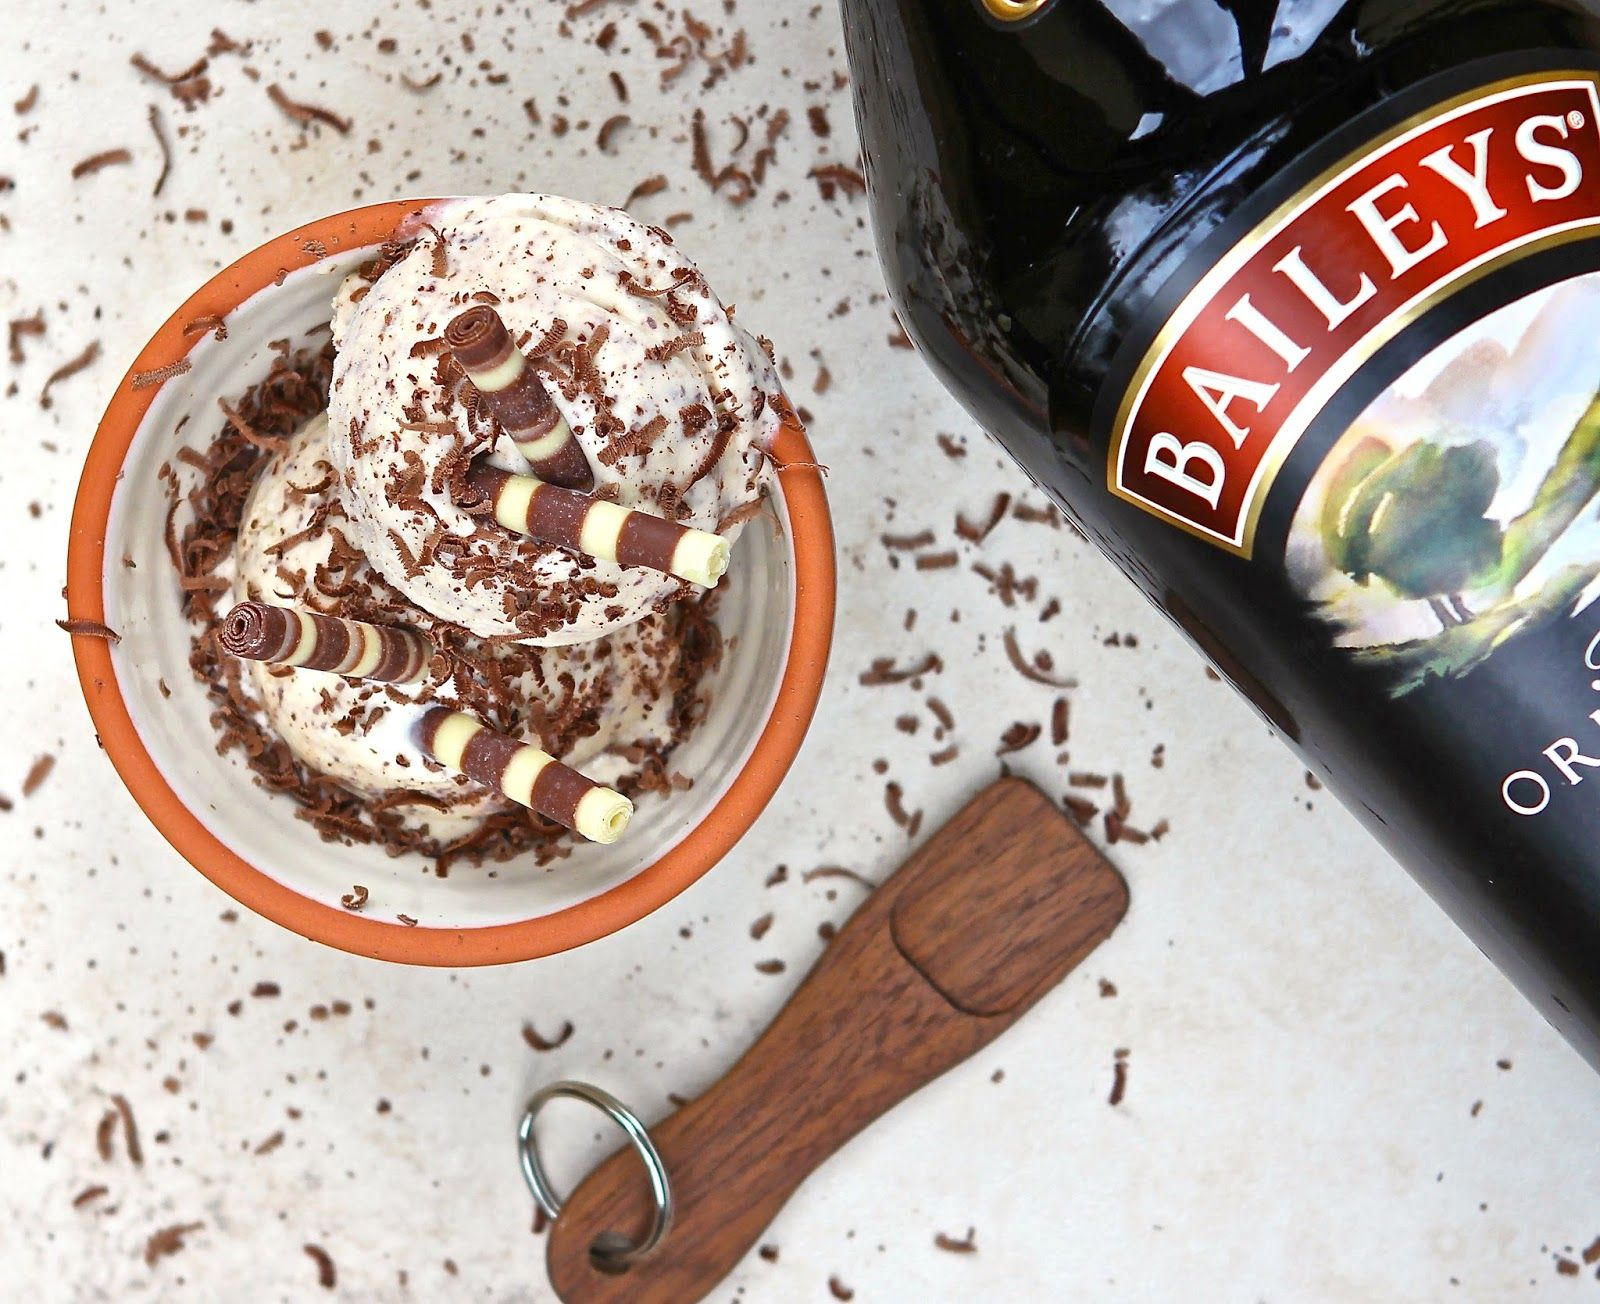 Love Baileys Love Ice Cream Then You Absolutely Definitely No Doubt About It Have To Make This When I Went Into Tesco Last Week Vafli